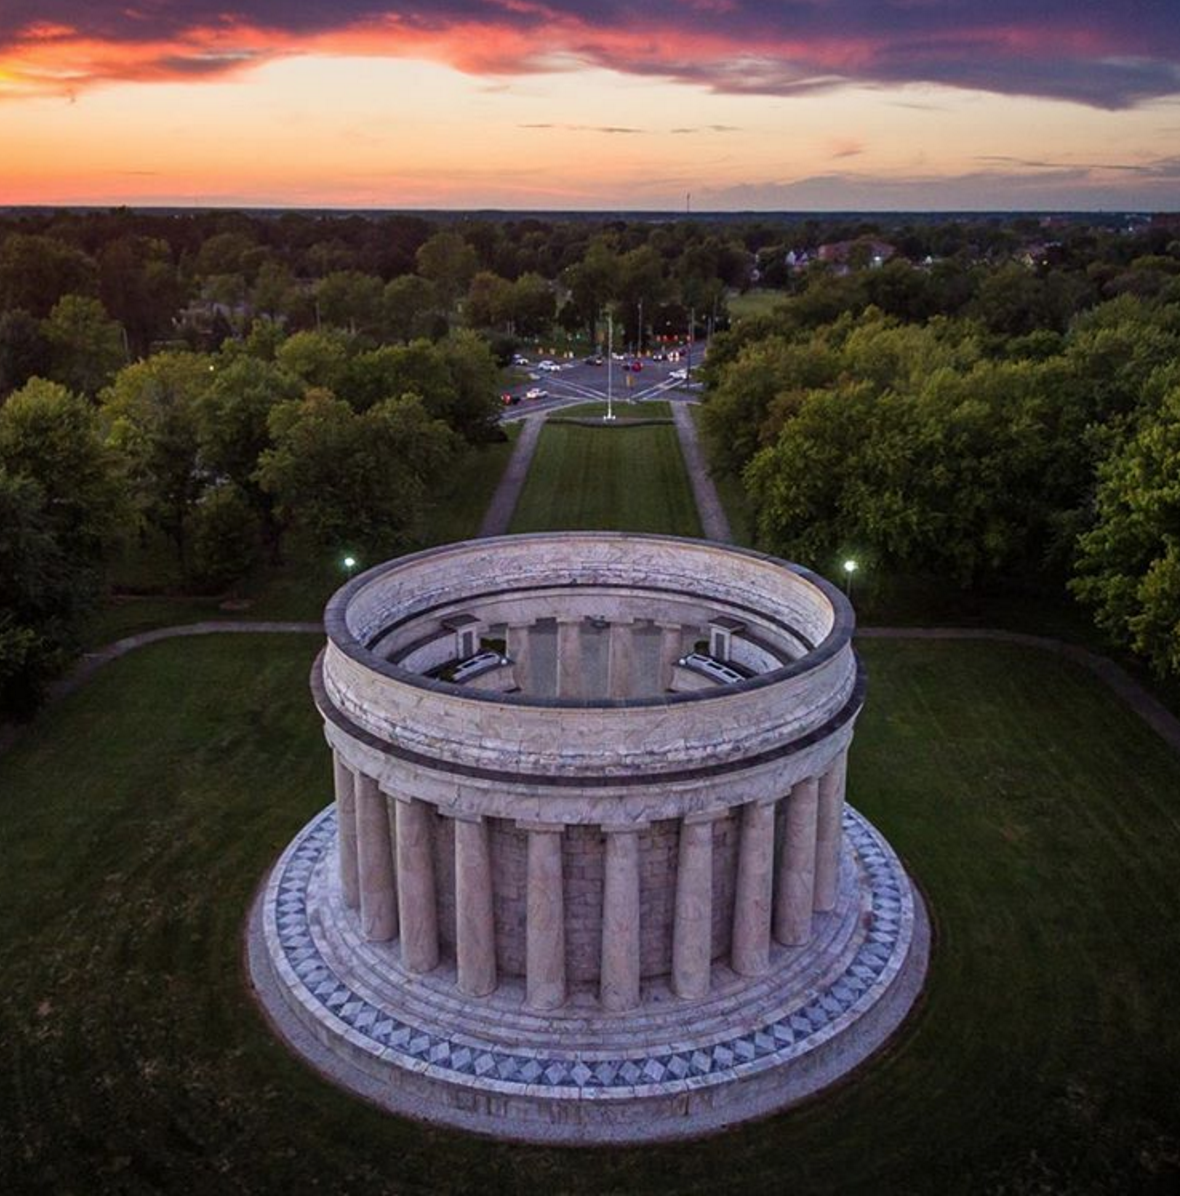 Photo by @ohiowanderer at Harding Memorial Park in Marion, Ohio